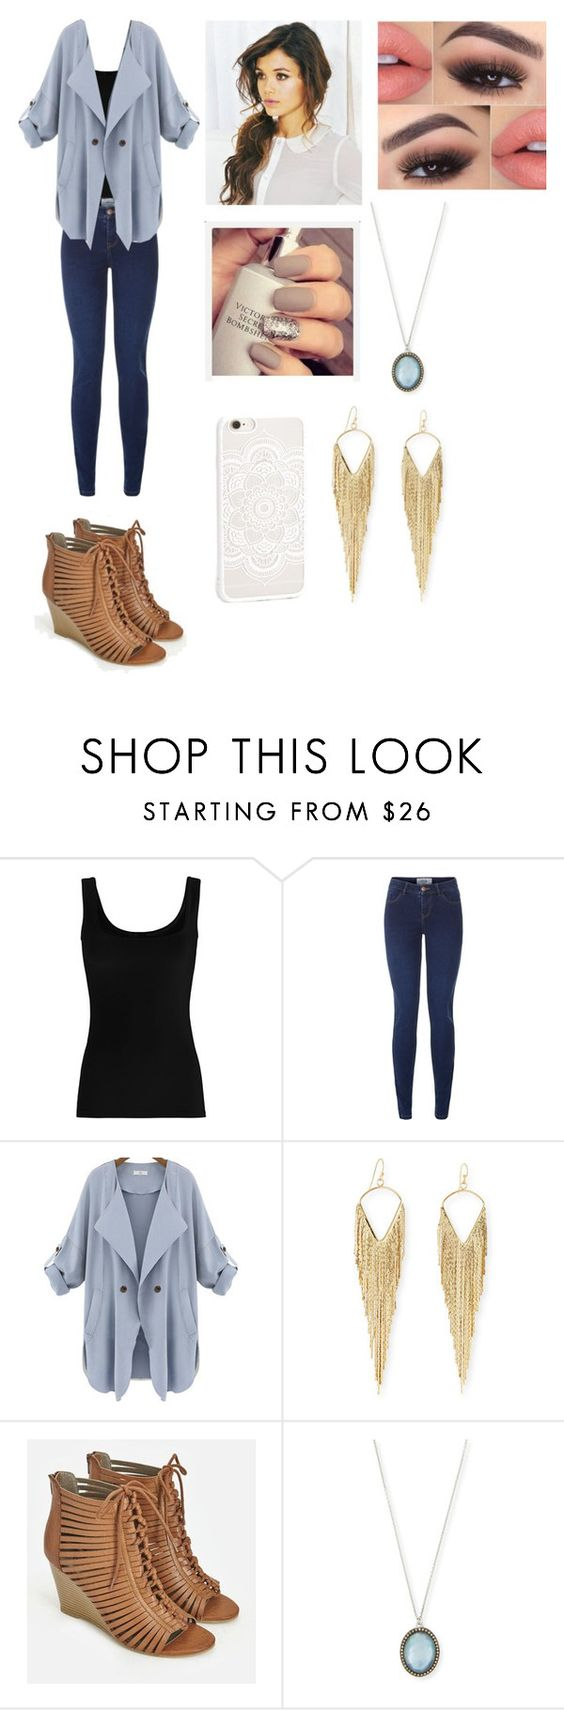 """Untitled #69"" by denise10198 ❤ liked on Polyvore featuring Twenty, New Look, Jules Smith, JustFab, Armenta and JFR"